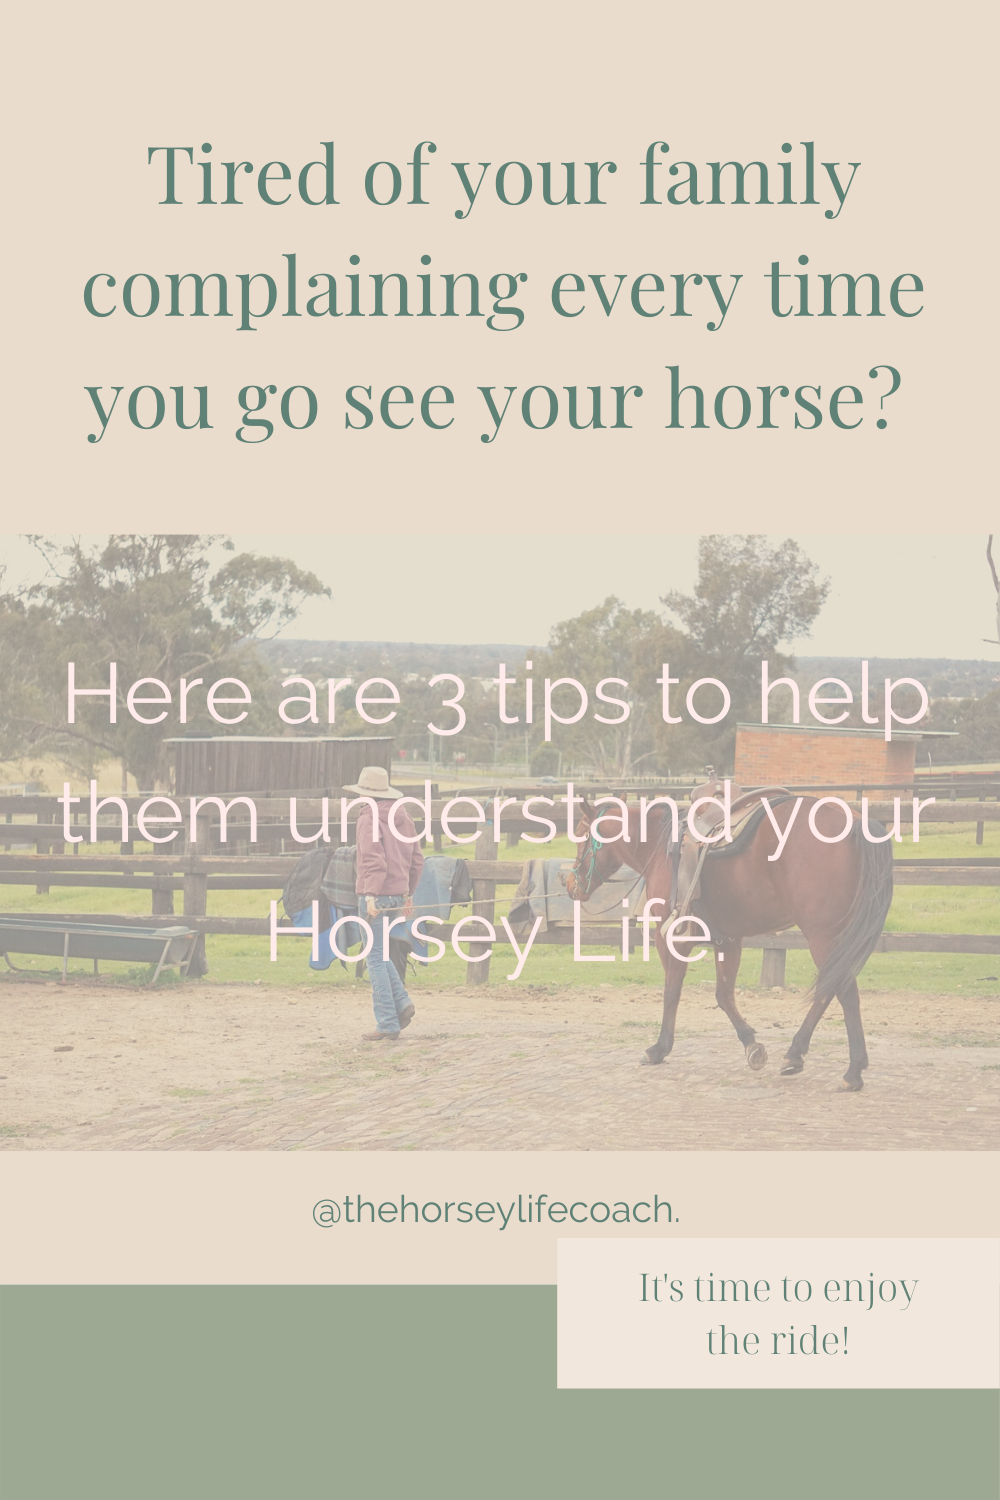 Tired of your family complaining every time you go see your horse? Here are 3 tips to help them understand your Horsey Life.